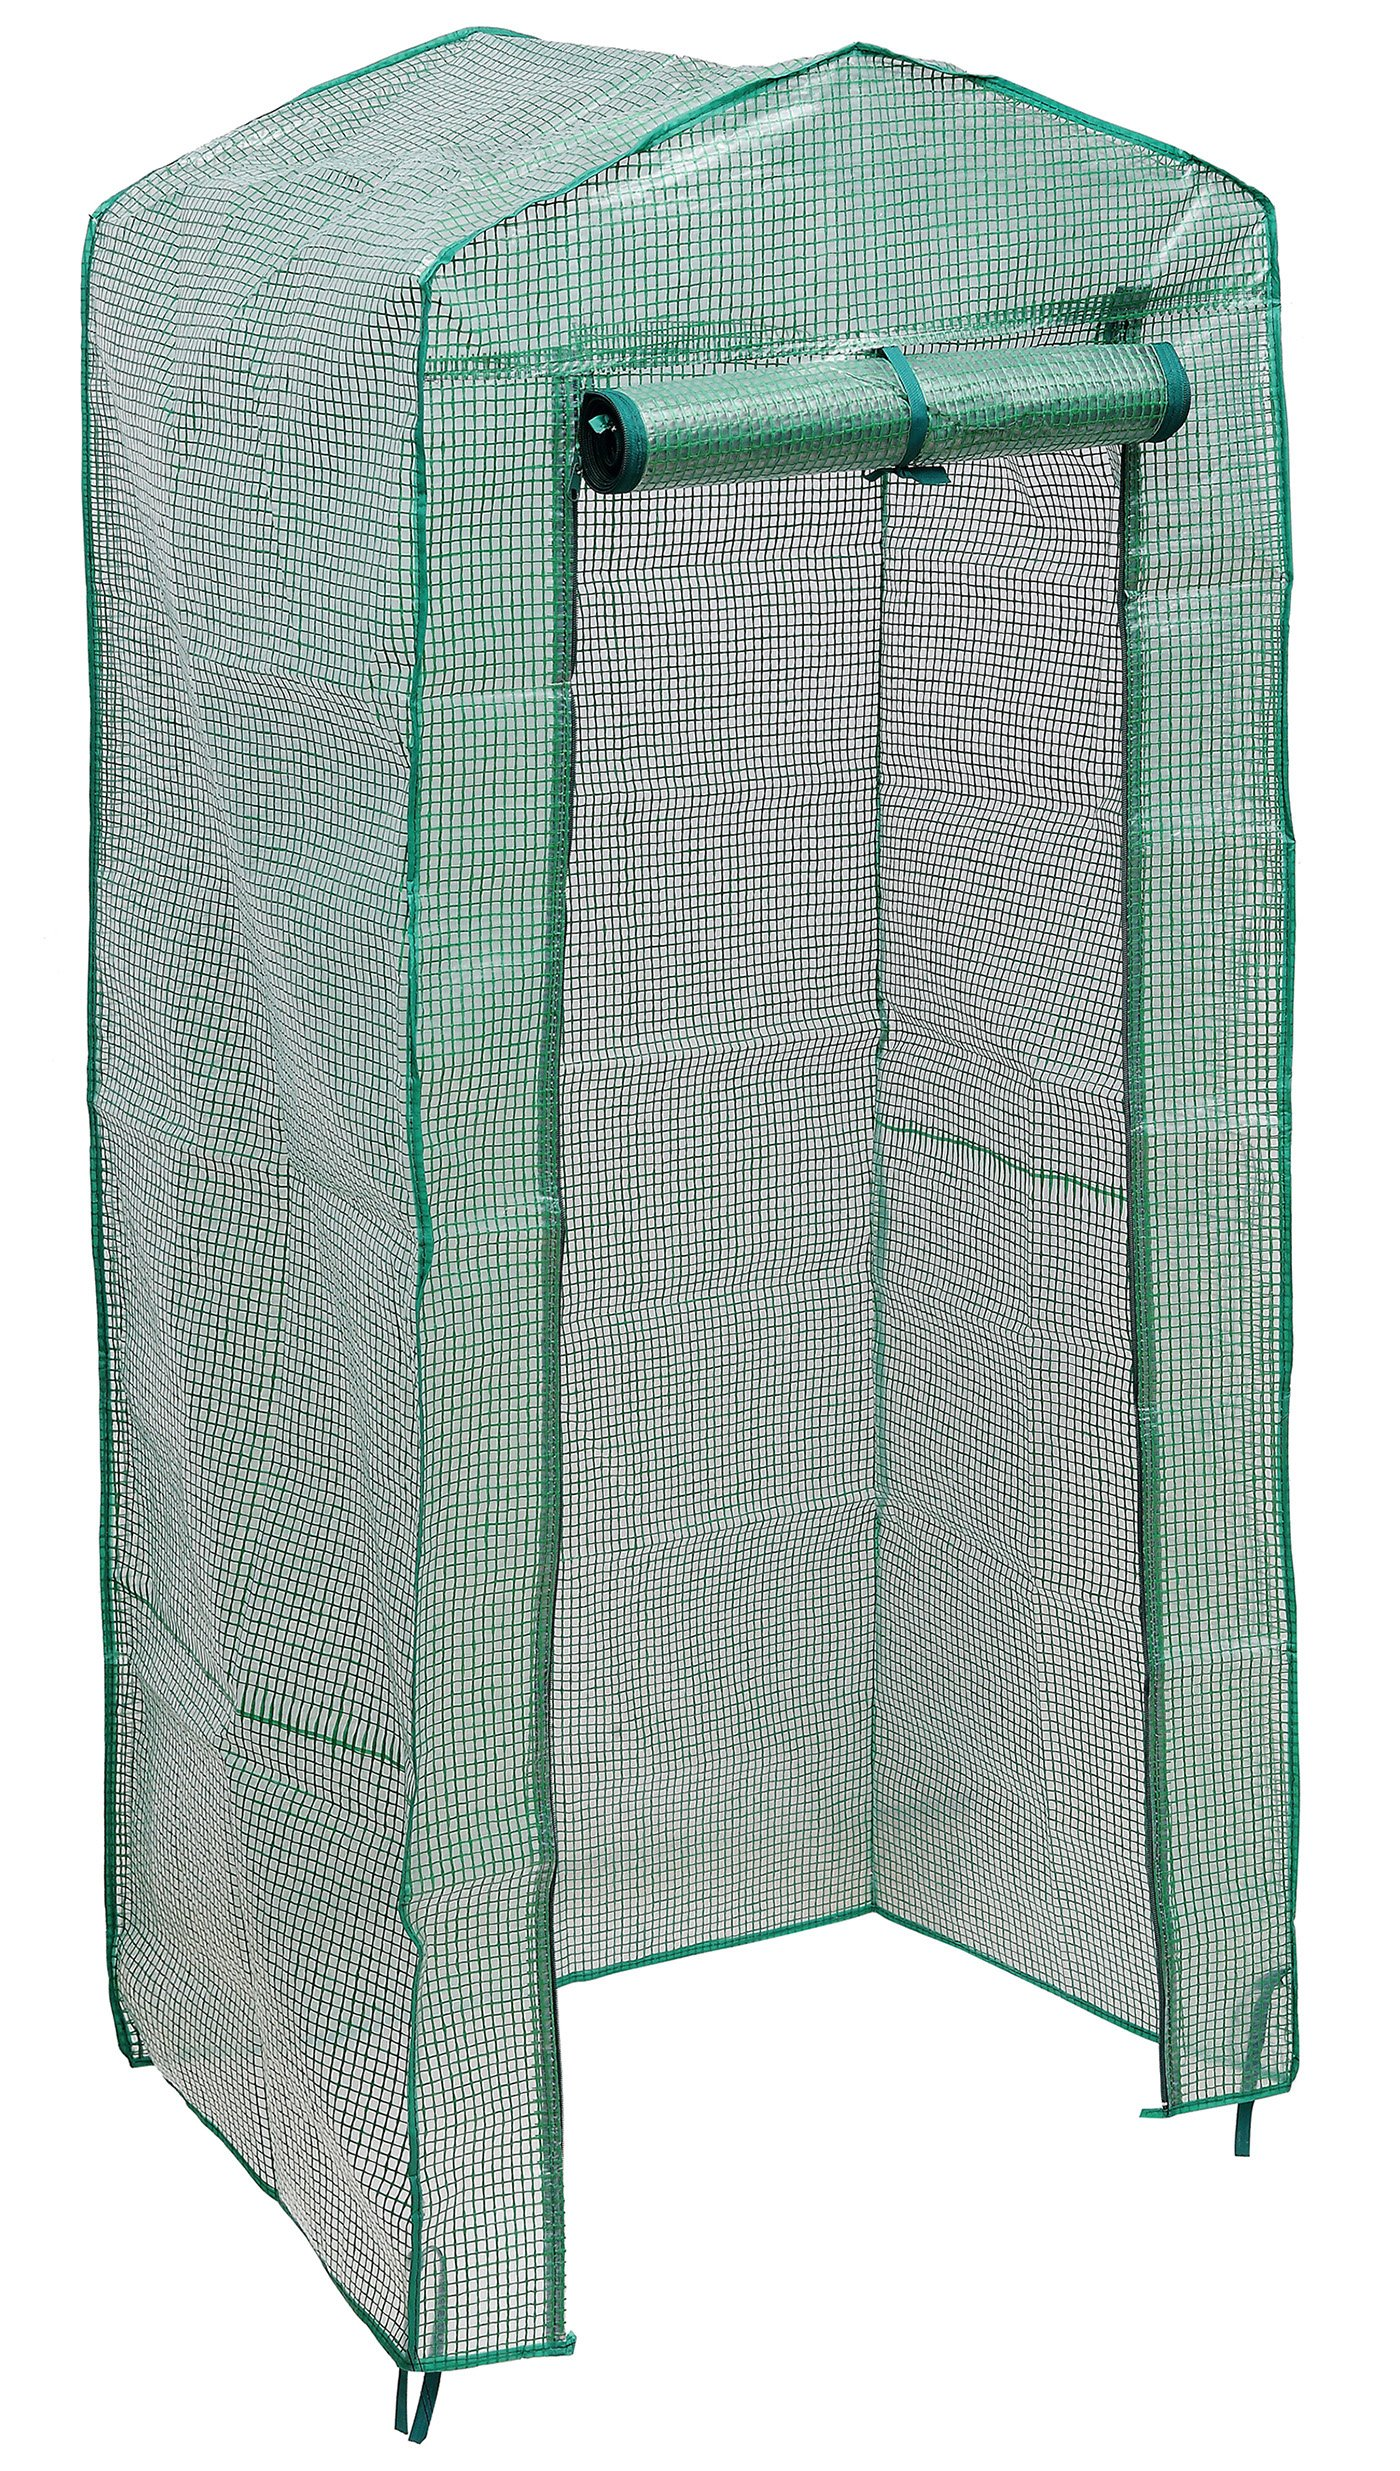 NKTM 4-Tier Mini Greenhouse Replacement Cover,Outdoor Compact Walk-in Greenhouse 27'' Long x 18'' Wide x 63'' High(FRAM NOT Include) by NKTM